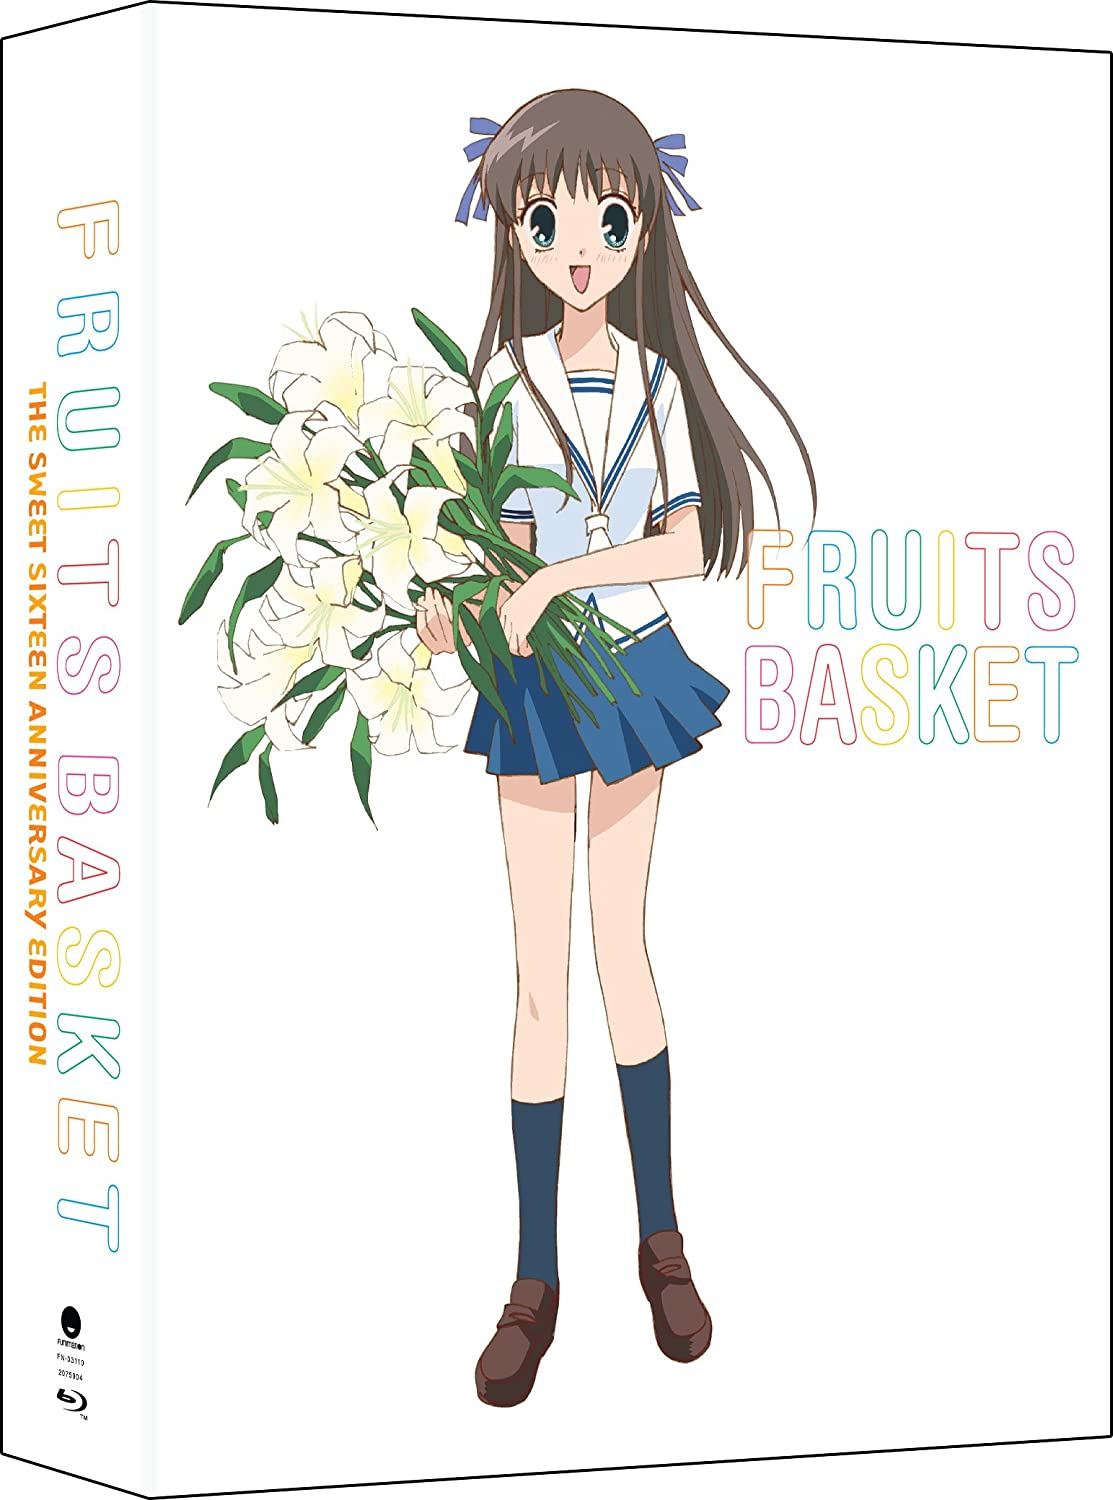 Amazon Fruits Basket The Complete Series Blu Ray Laura Bailey John Burgmeier Eric Vale Justin Cook Movies TV